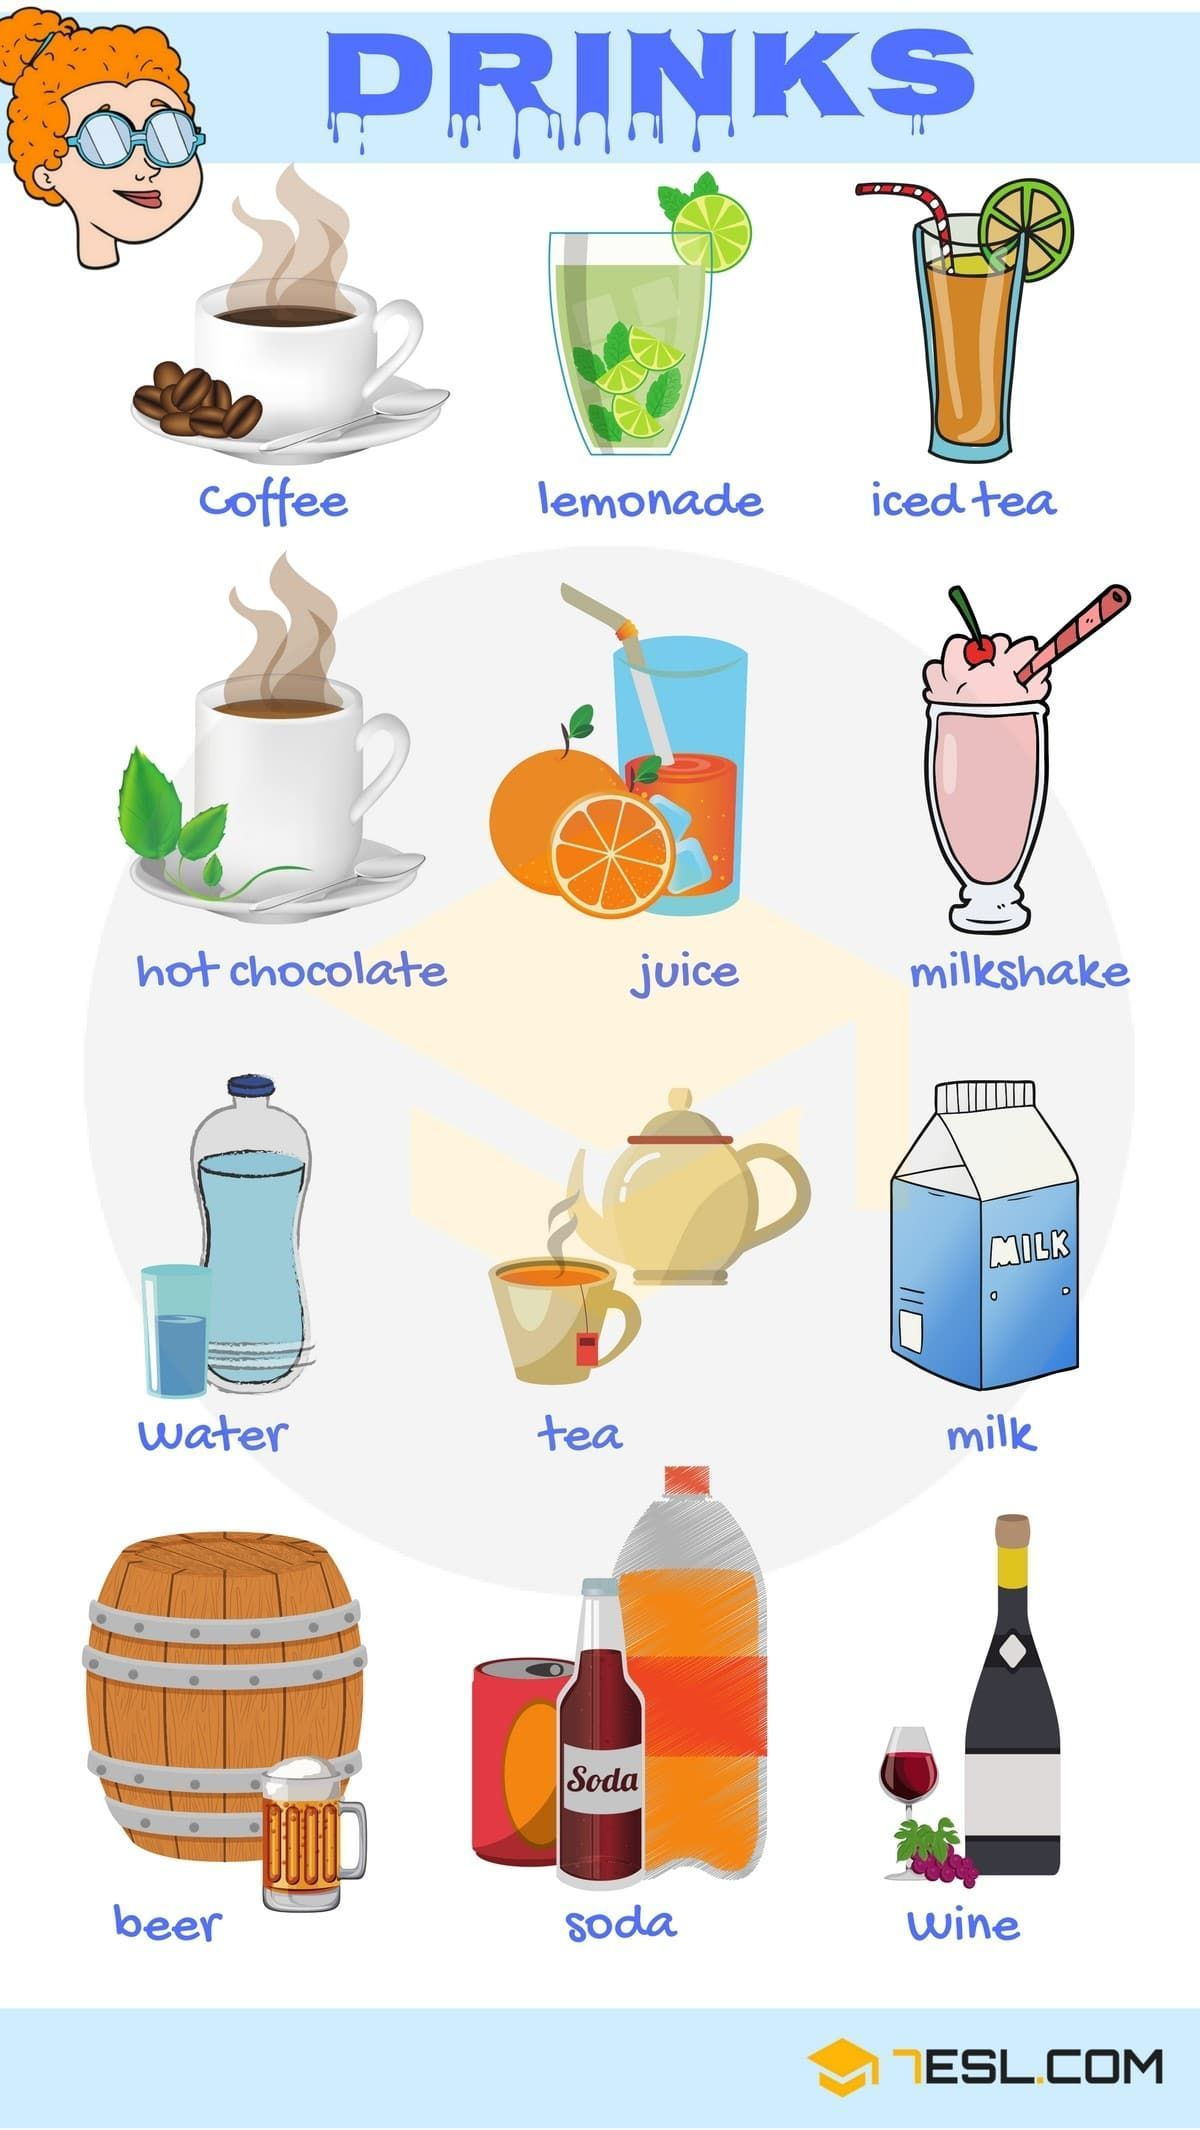 Learn Food and Drinks Vocabulary through Pictures. Food is any substance consumed to provide nutritional support for an organism. It … and drinks flashcards Types of Food and Drinks with Pictures